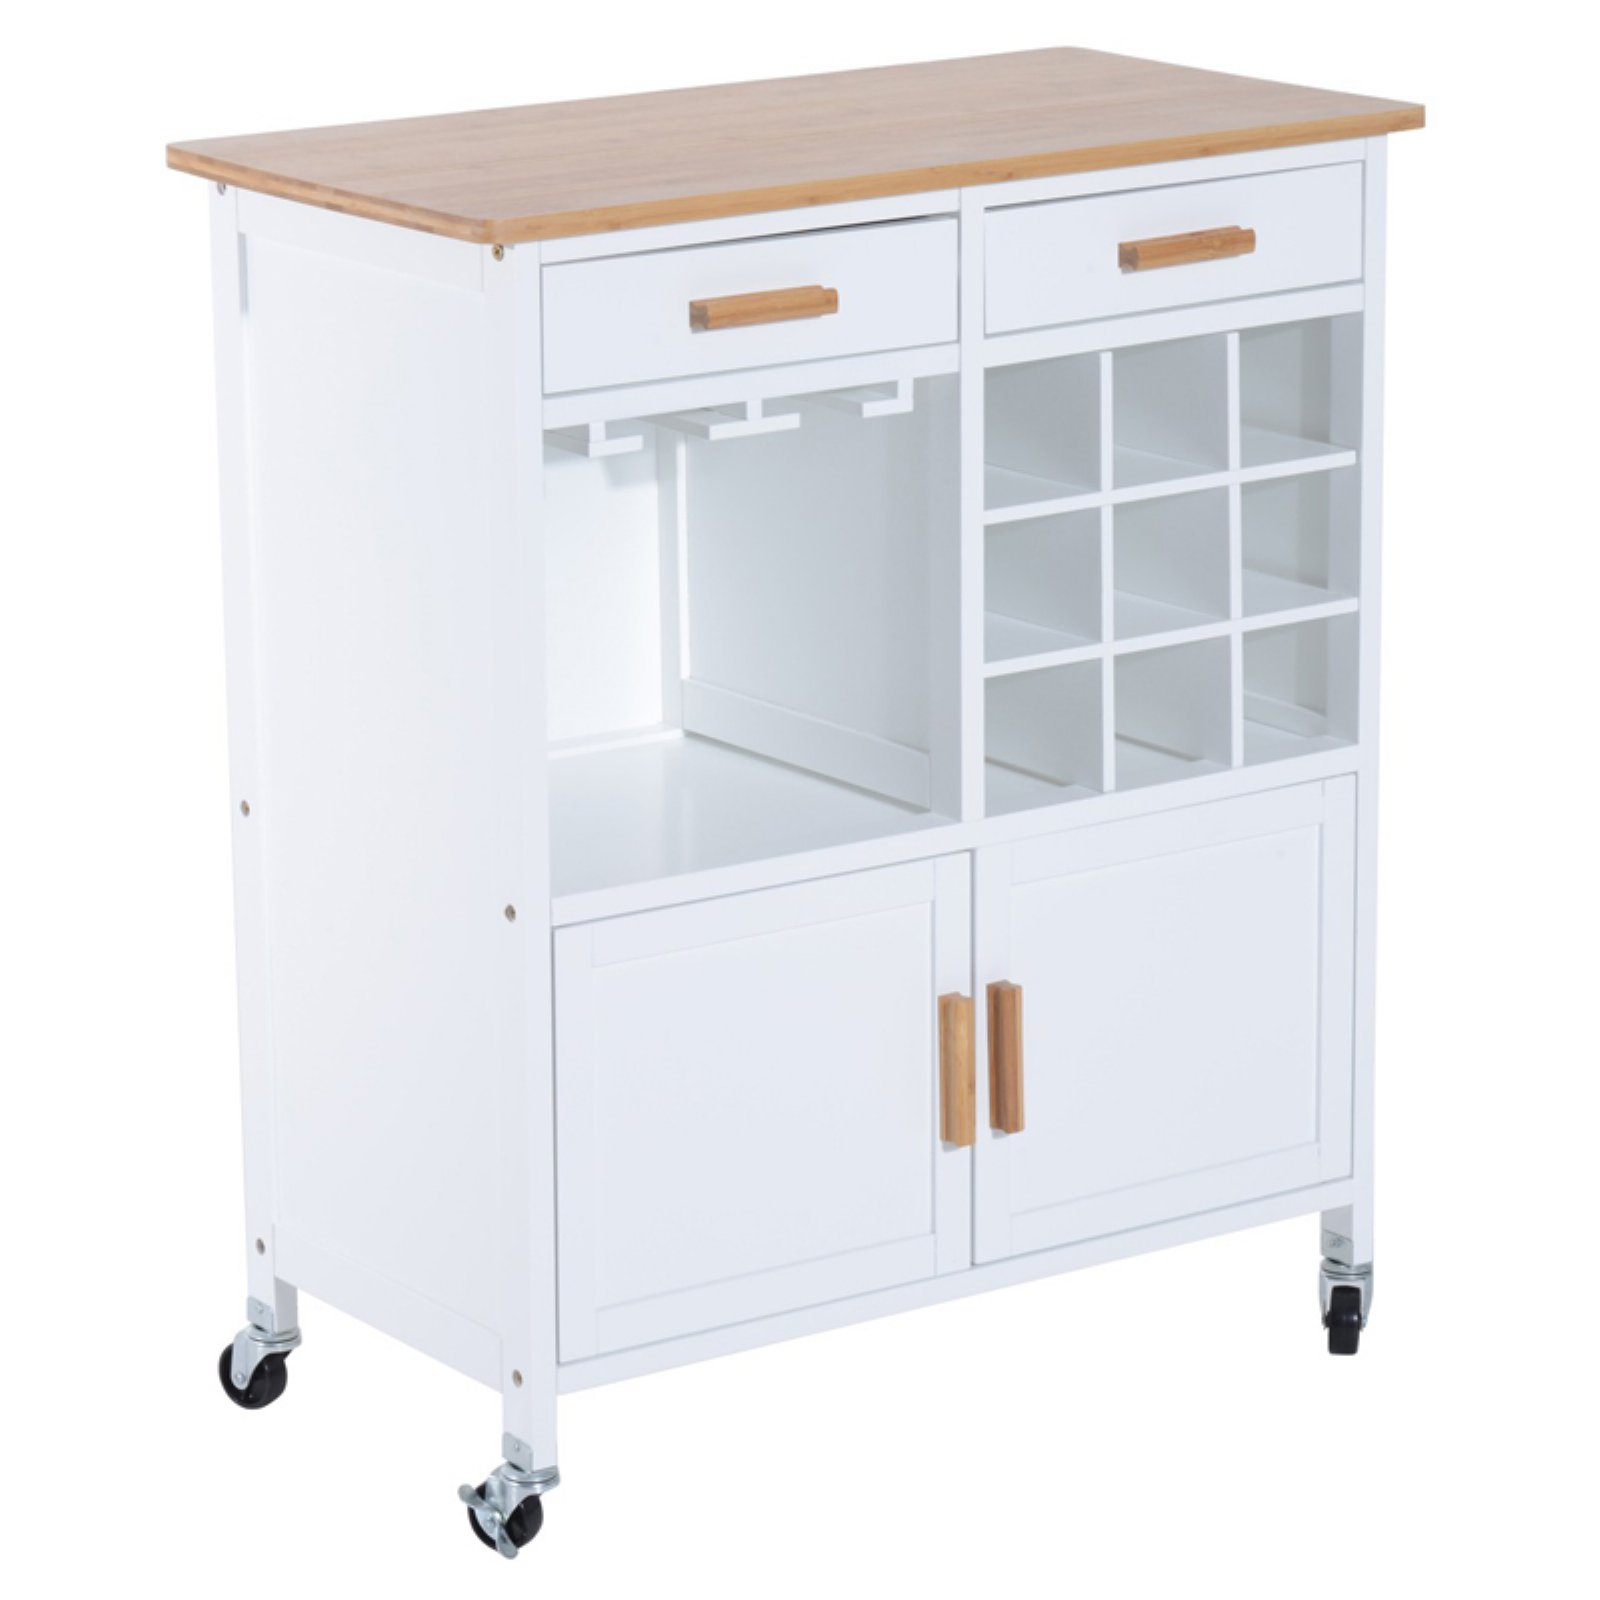 Rolling Kitchen Trolley Serving Cart With Wine Rack